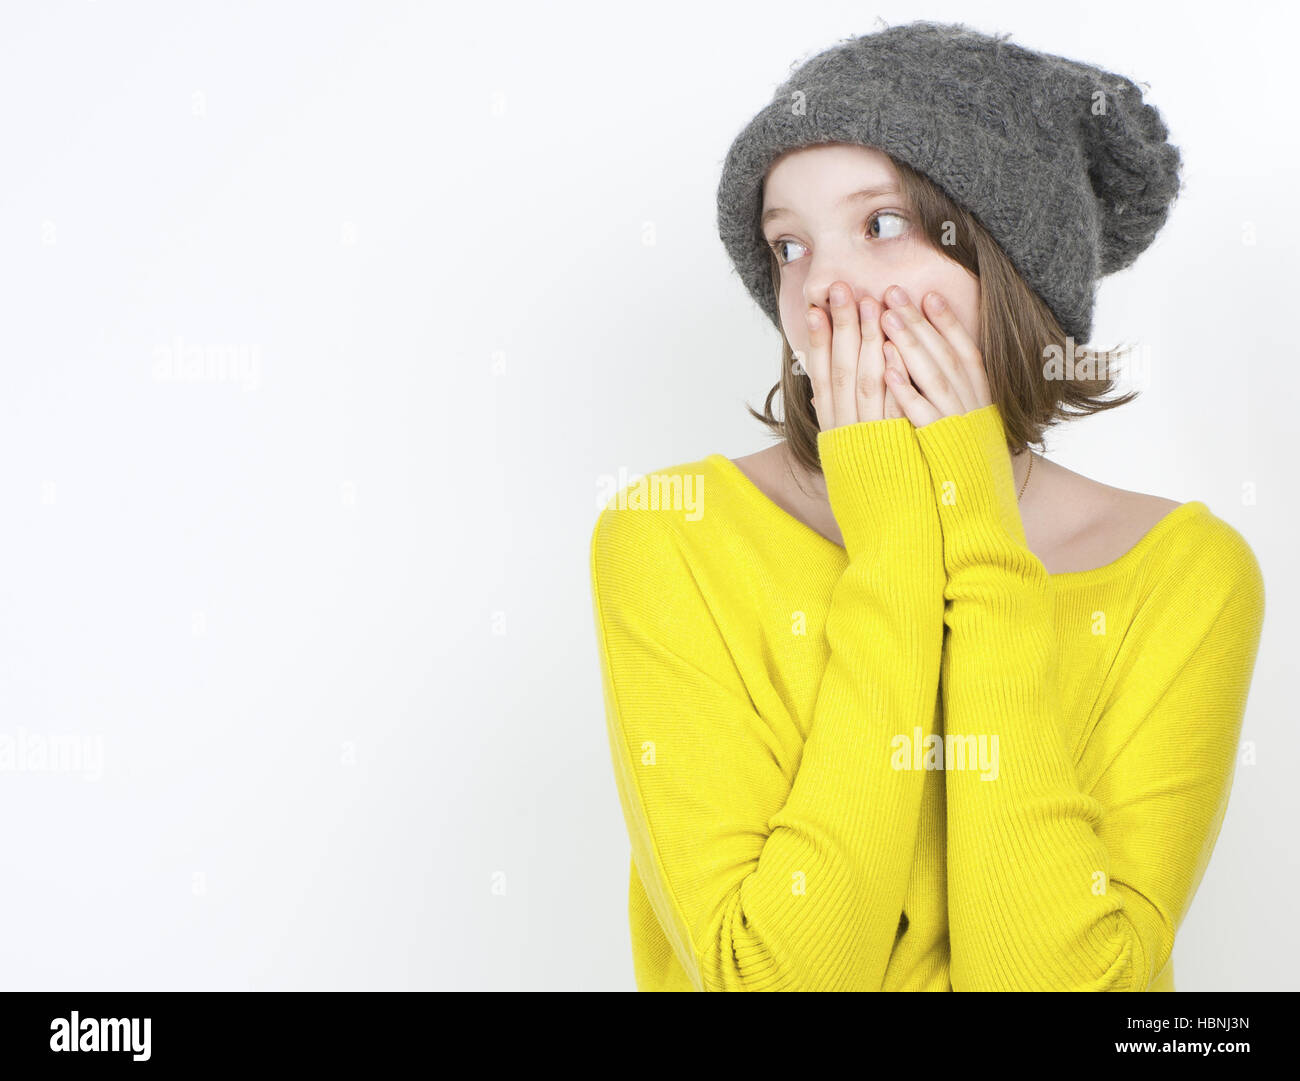 Frightened girl looking to the side. - Stock Image